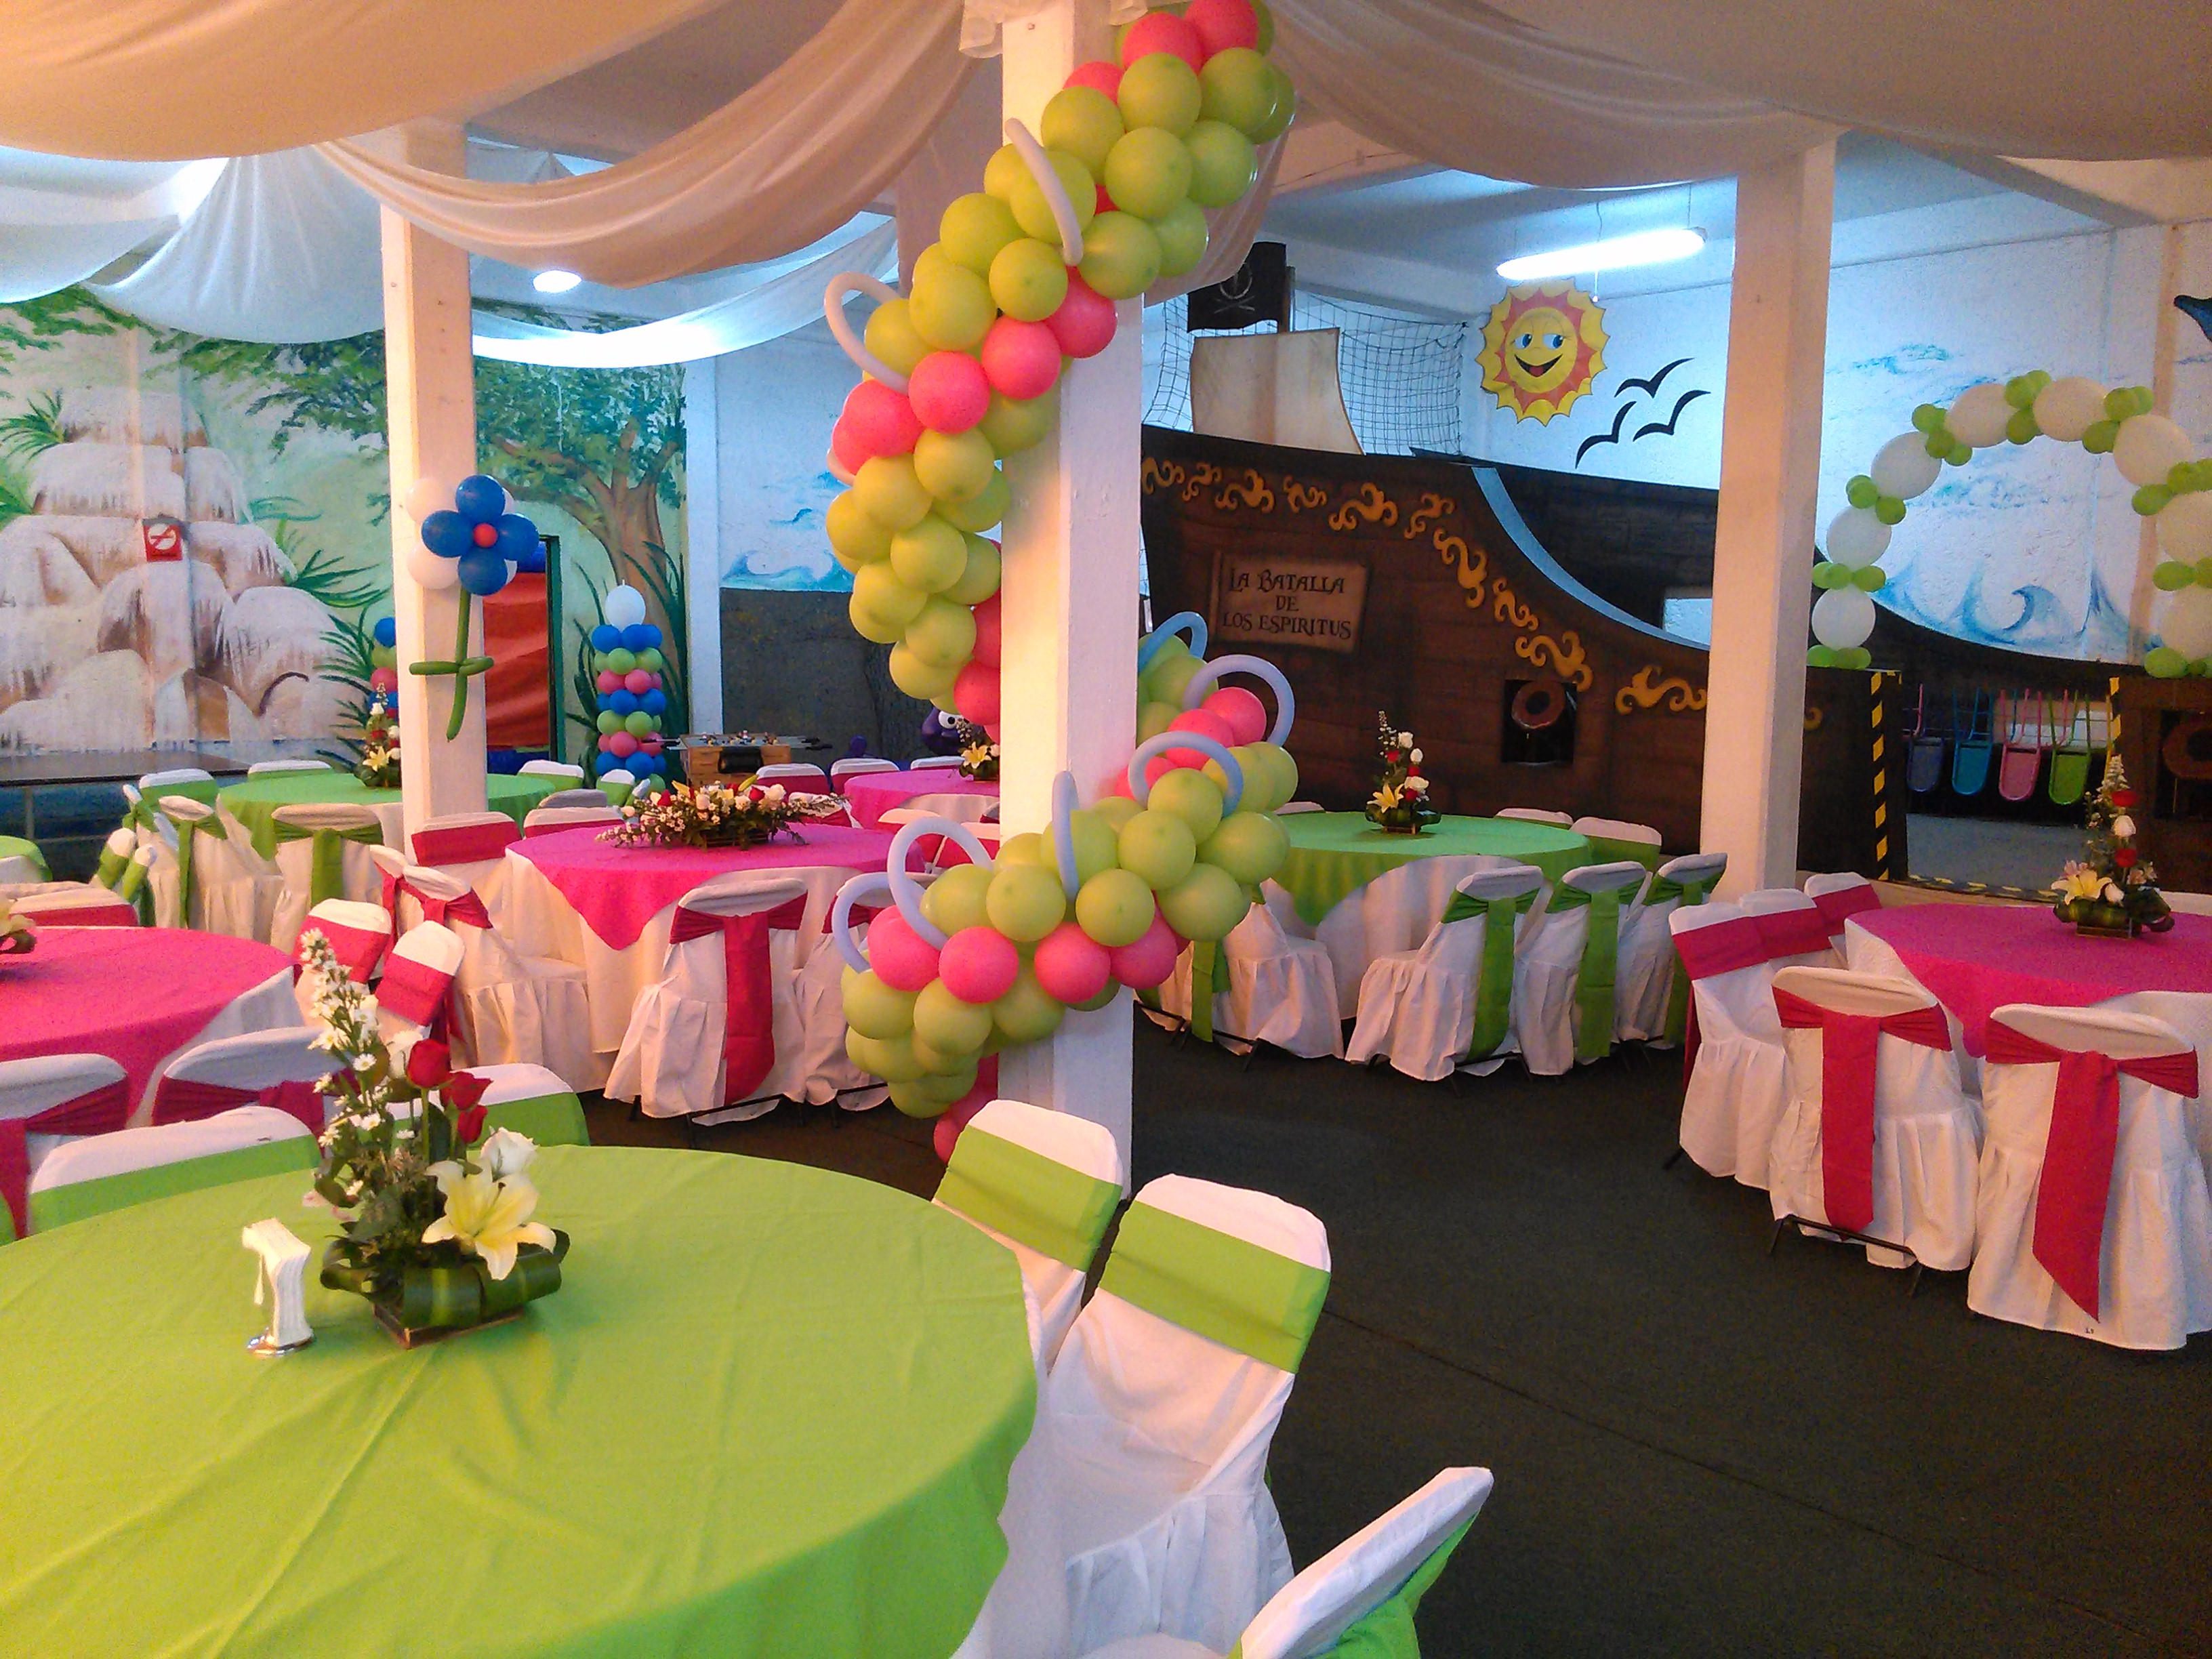 AREA DE RECEPCION